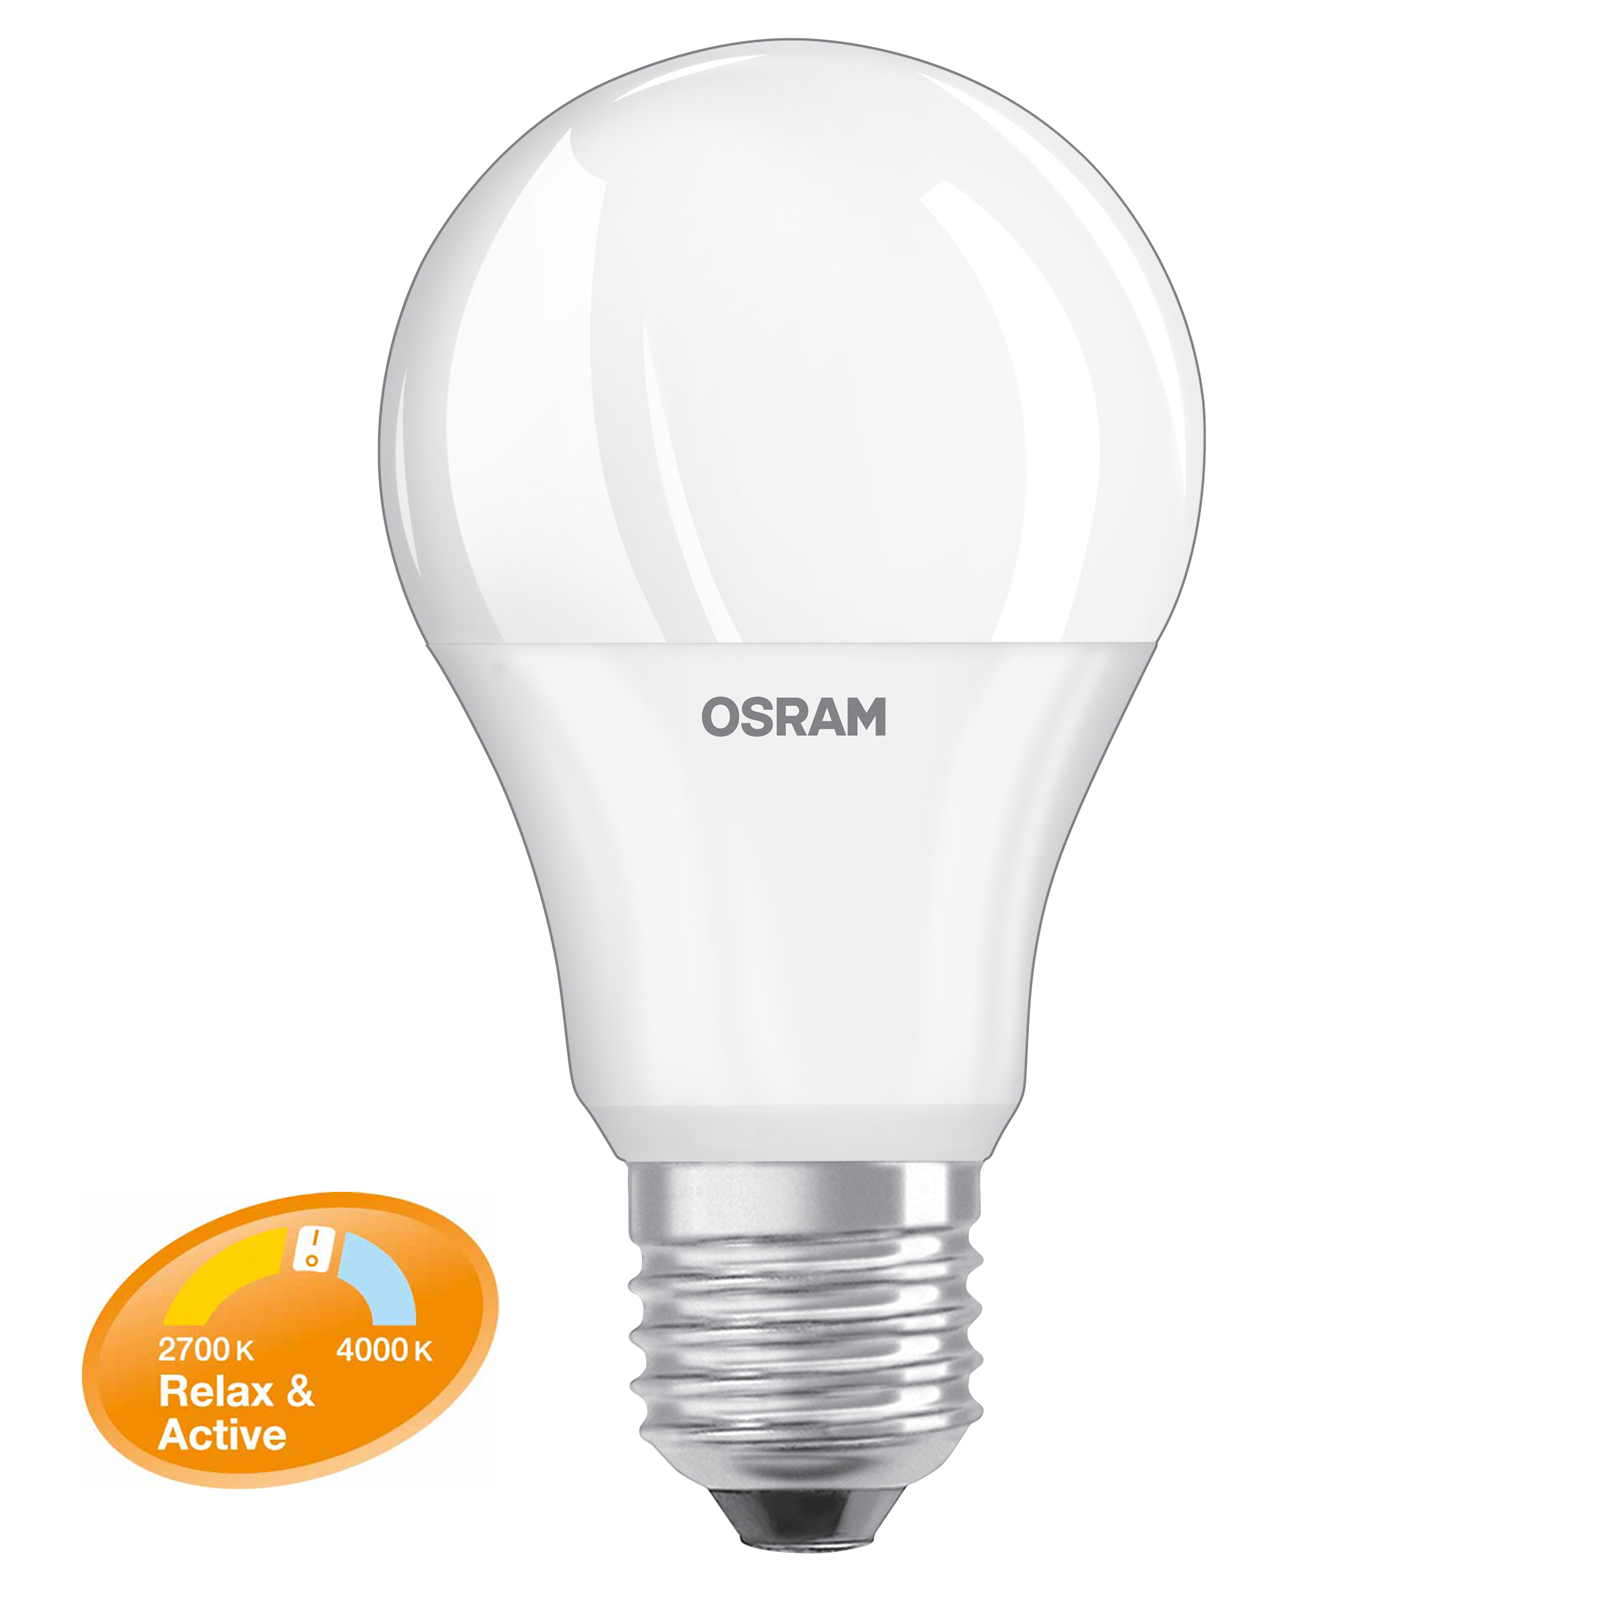 osram led relax active classic a 60 e27 8 watt wie 60. Black Bedroom Furniture Sets. Home Design Ideas